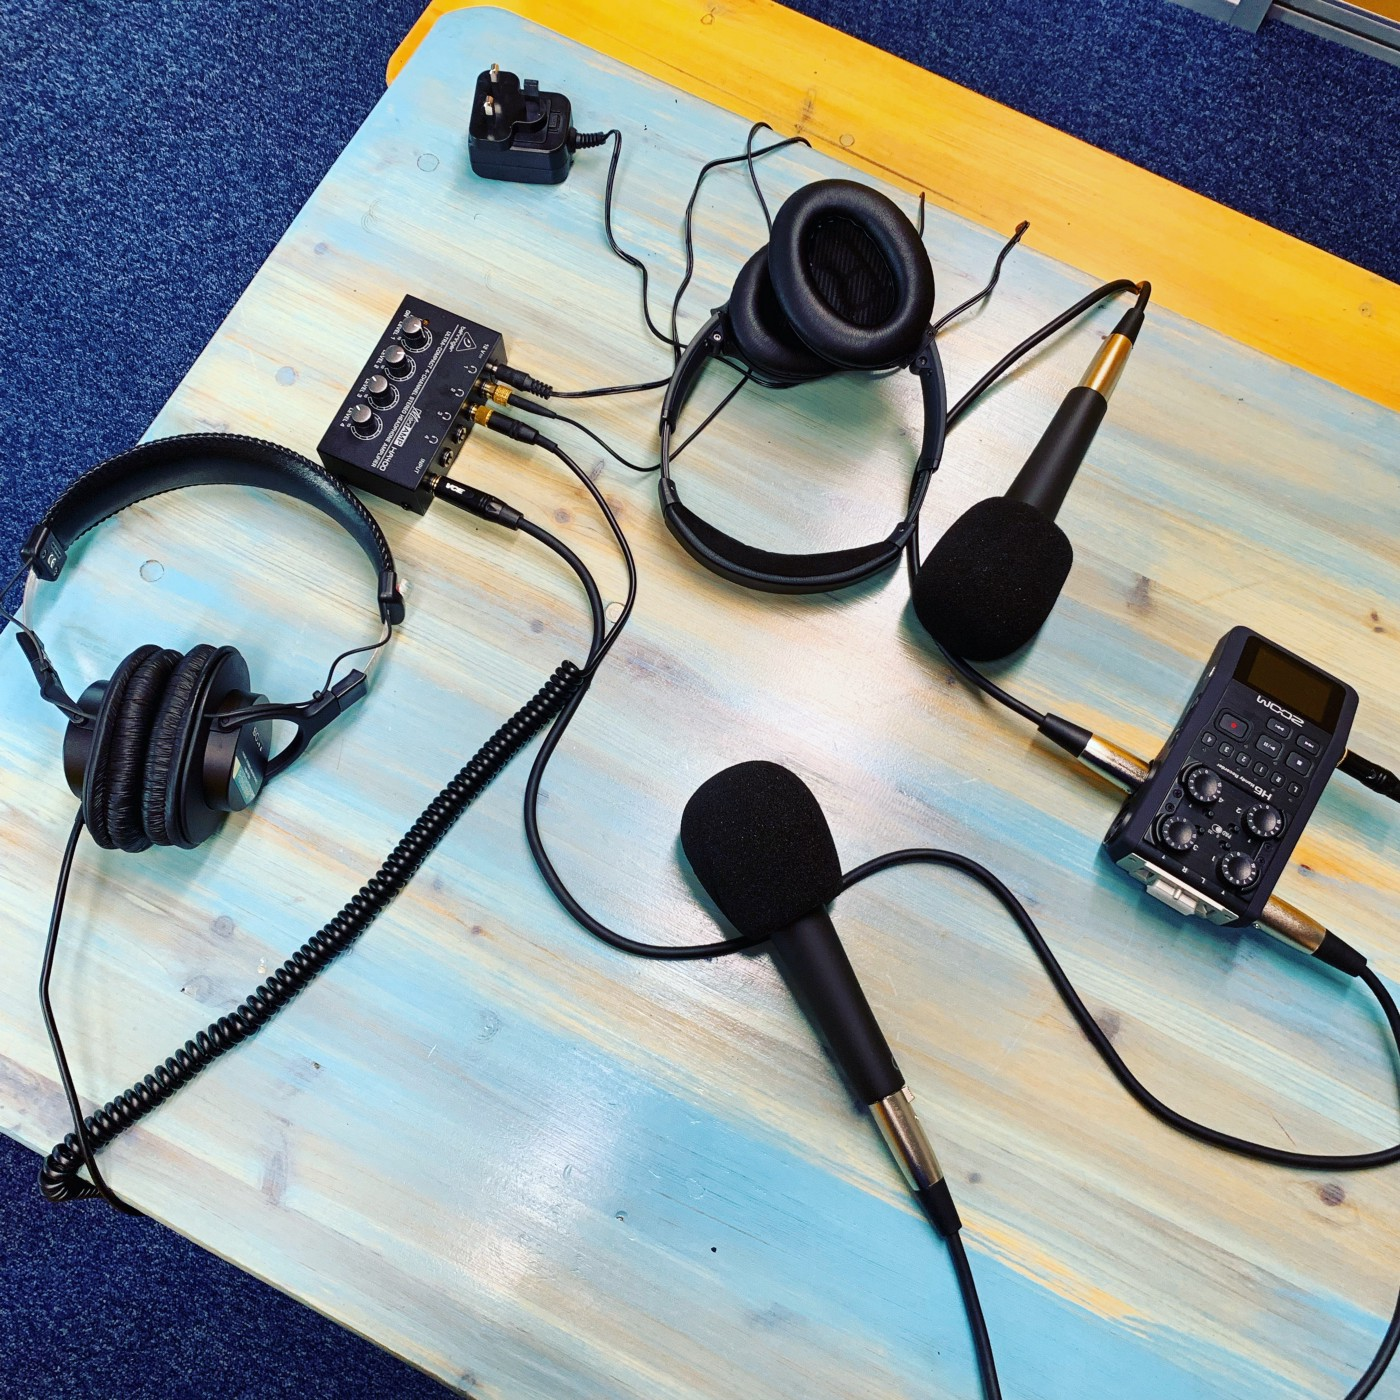 Podcasting equipment on a table, The Recruiting Future Podcast